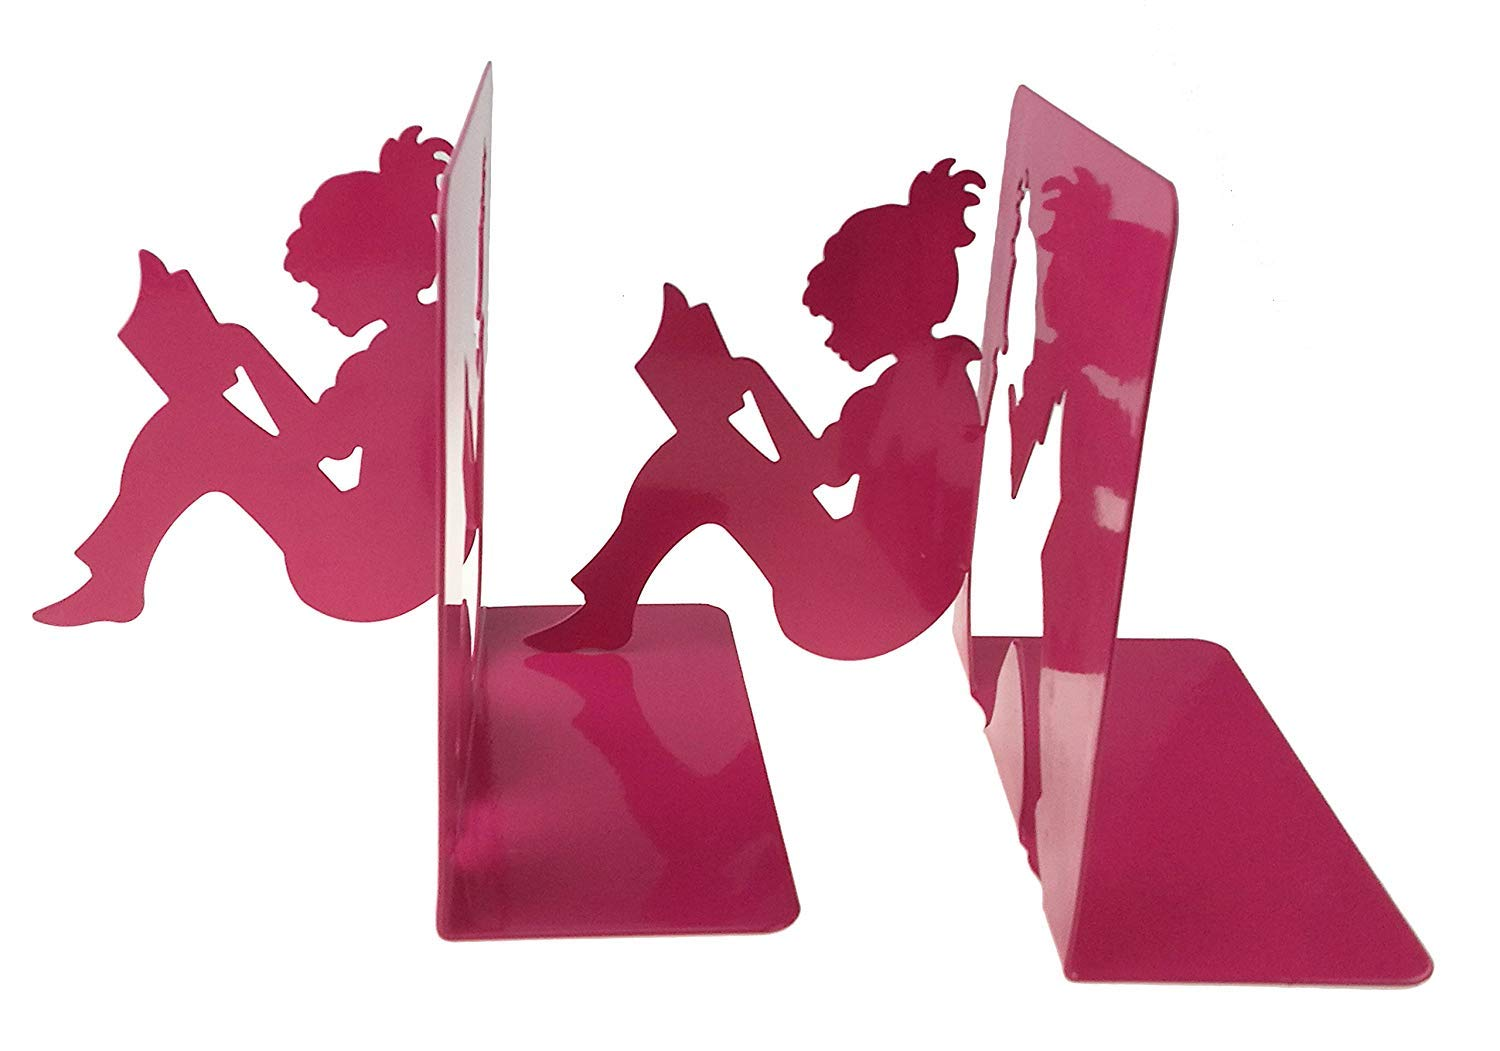 Rose Red 3D Paper-Cut Little Girl is Reading Metal Bookends Book Ends for Kids